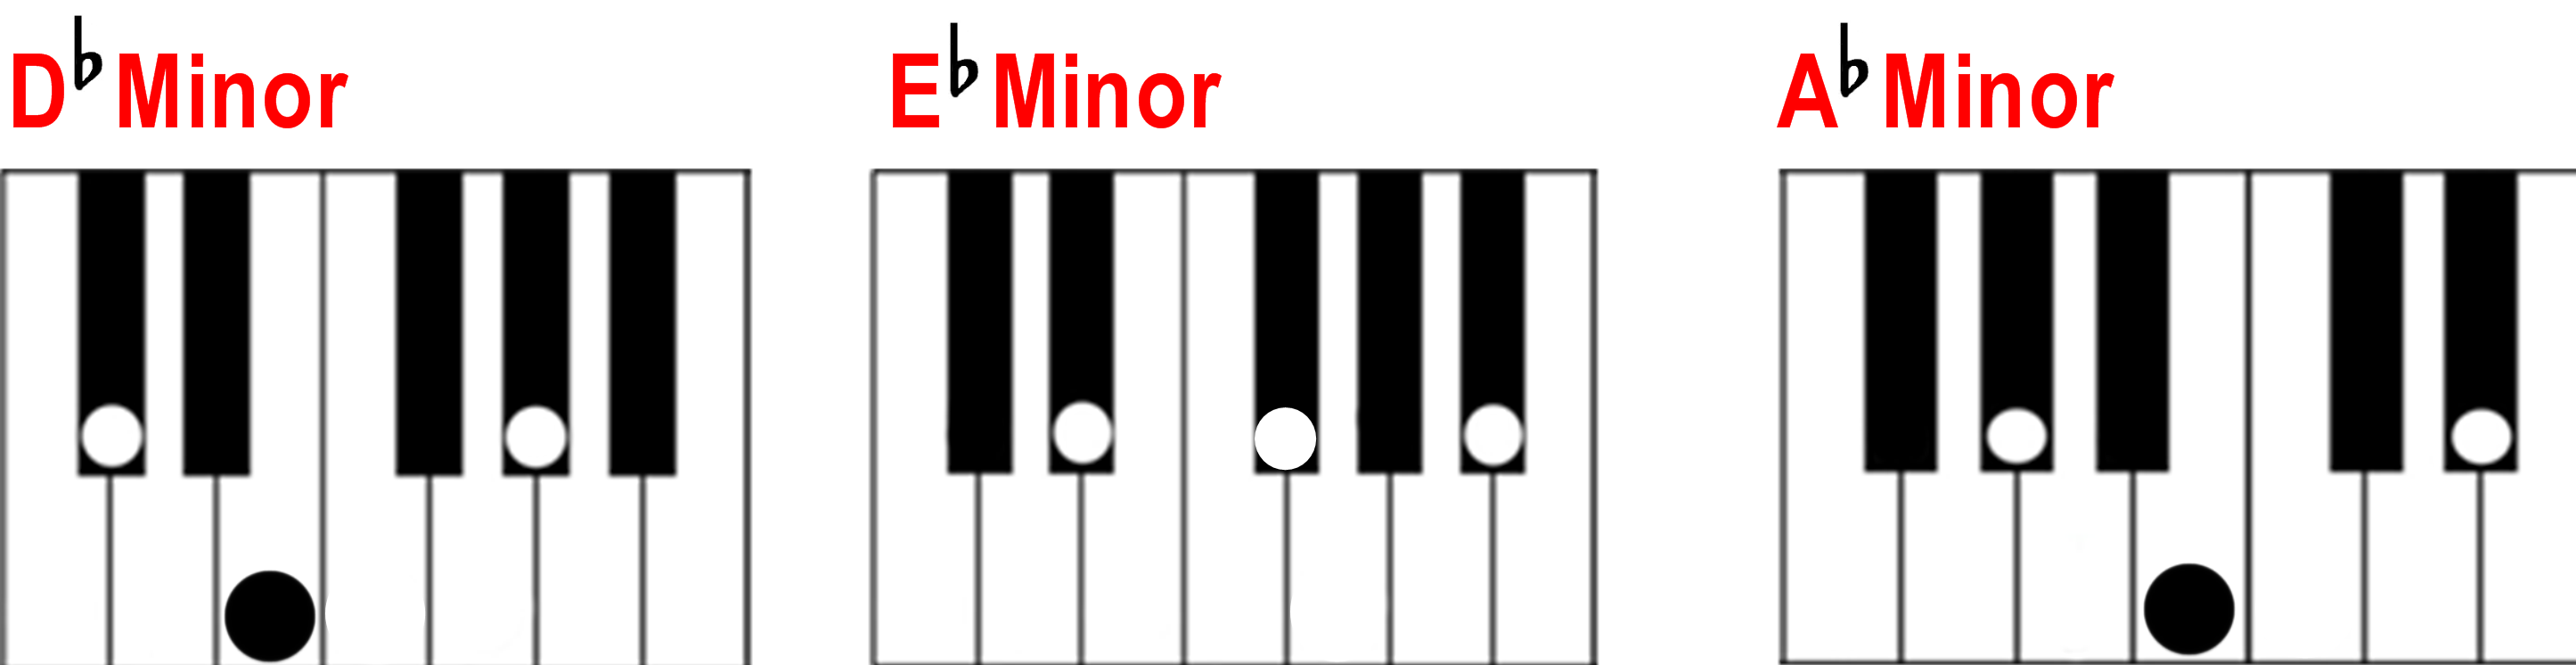 Finding a minor chord on the piano A Flat Chord Piano